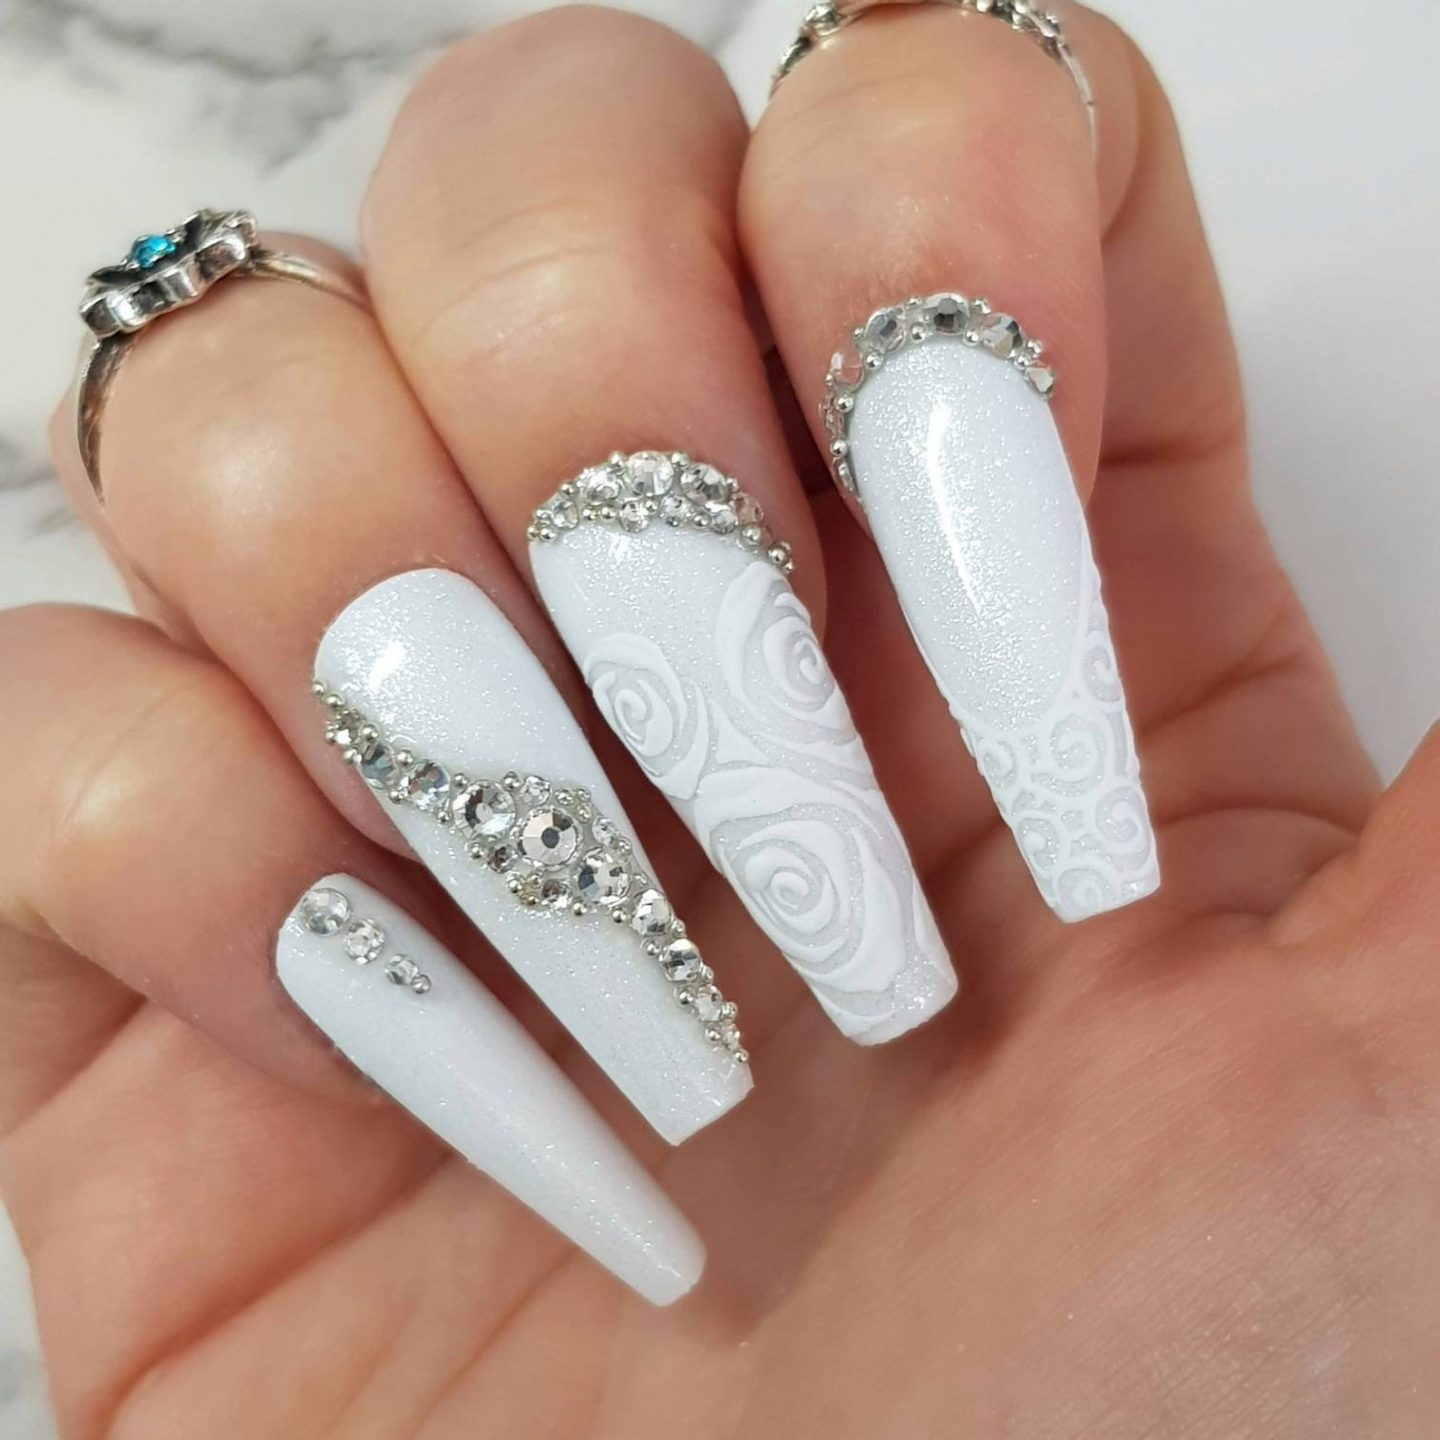 Long white wedding nails with lace nail art, glitter and rhinestones